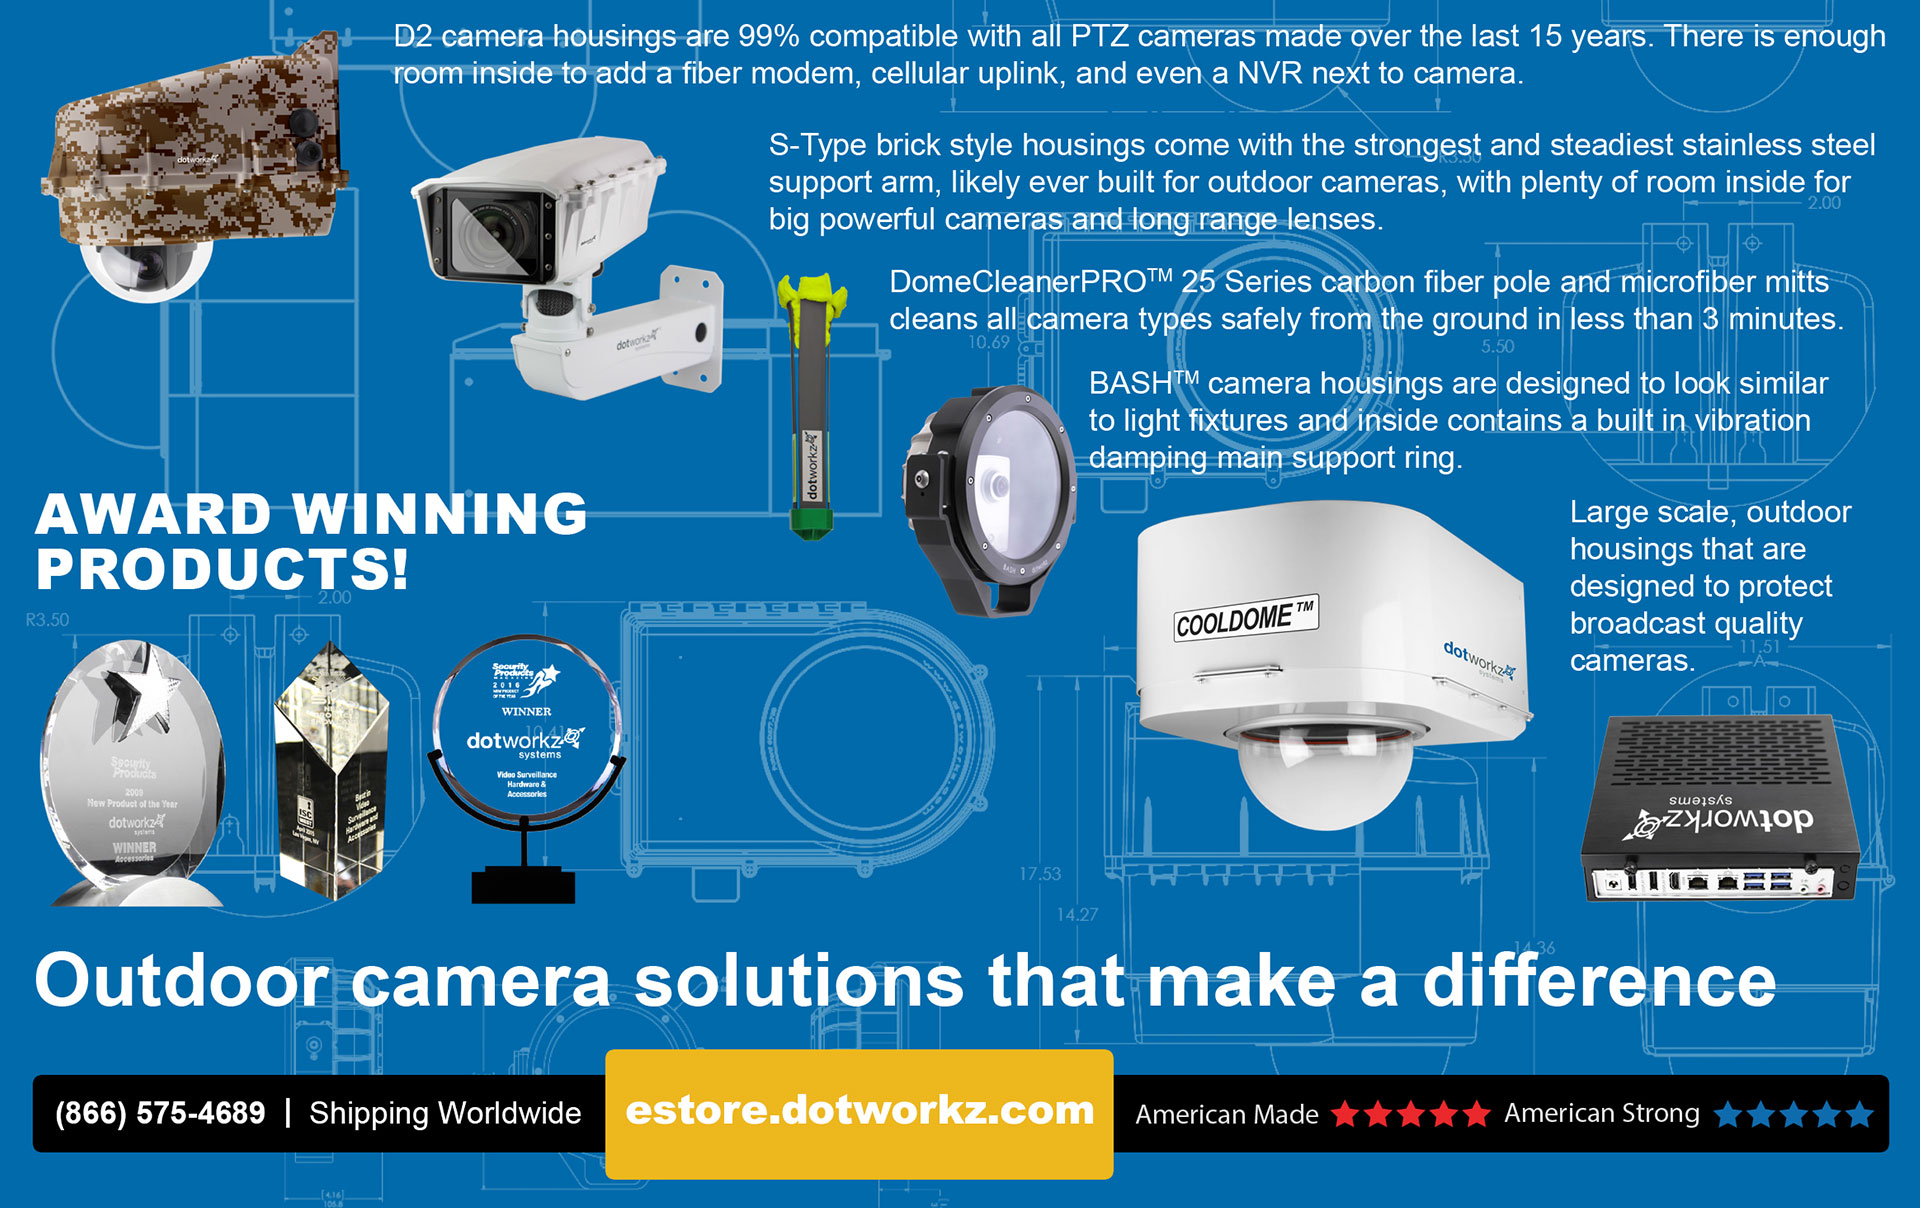 Dotworkz outdoor camera solutions that make a difference